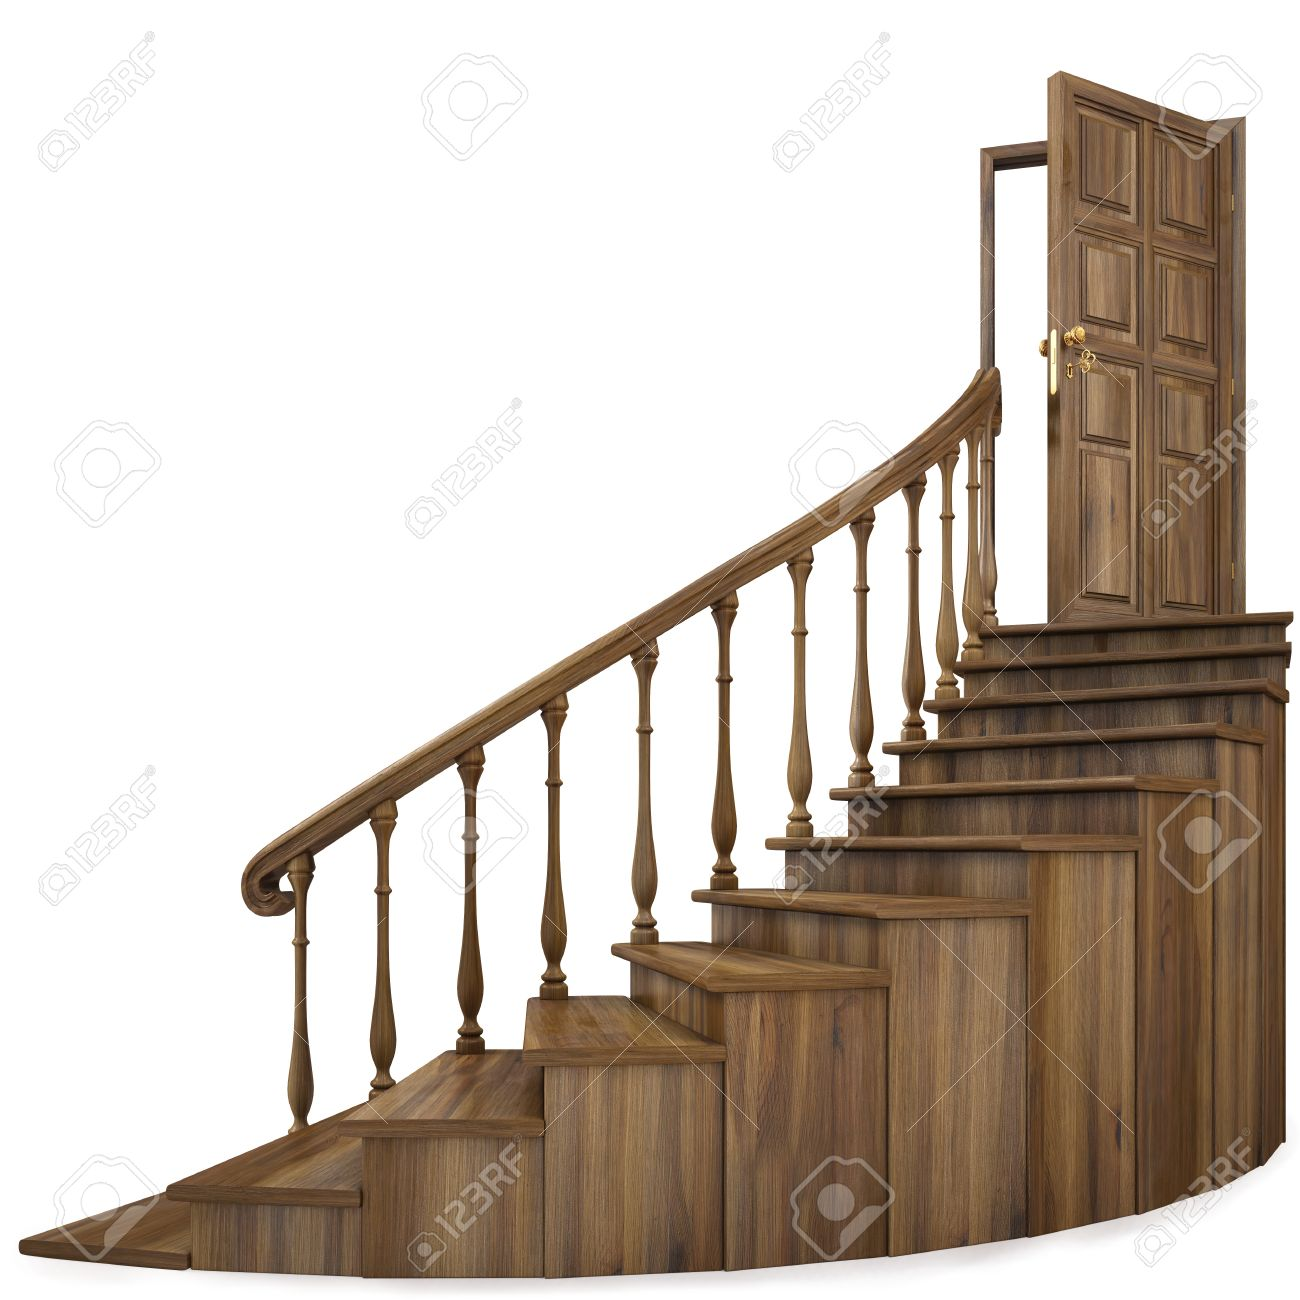 wooden twisted staircase and opened door. isolated on white. Stock Photo - 8991743